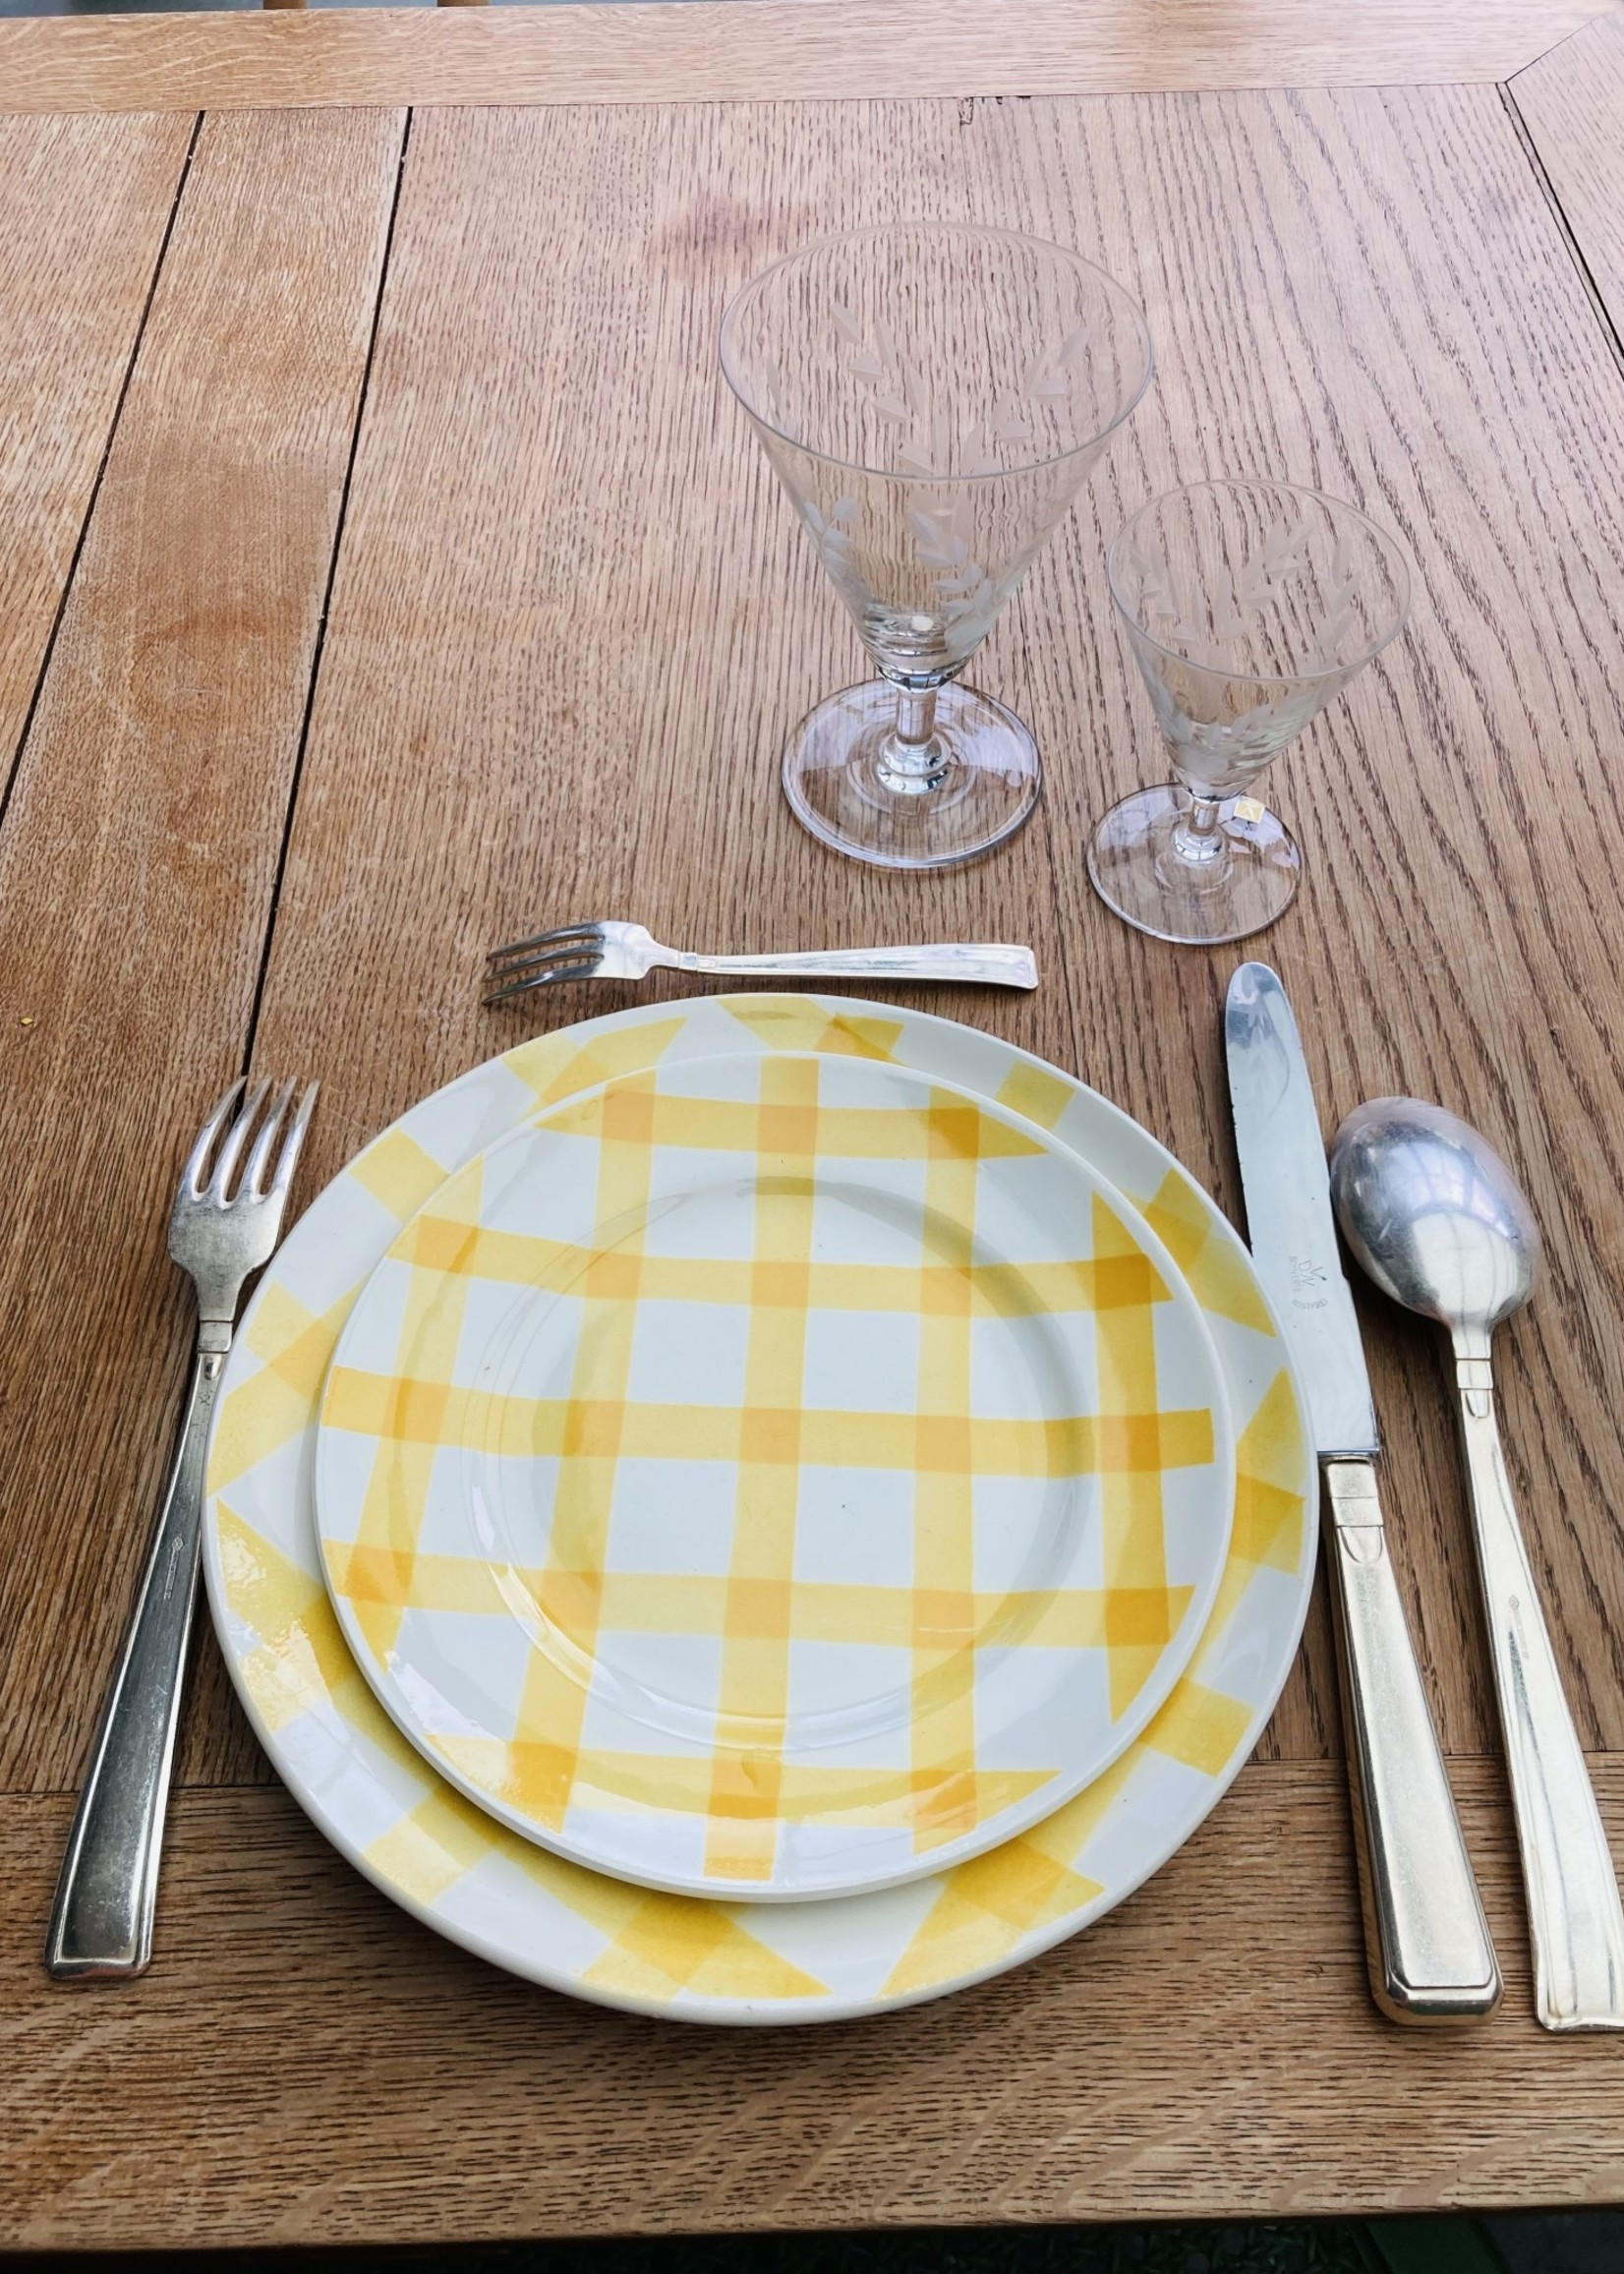 Large plates model Nappe yellow by Moulin les loups